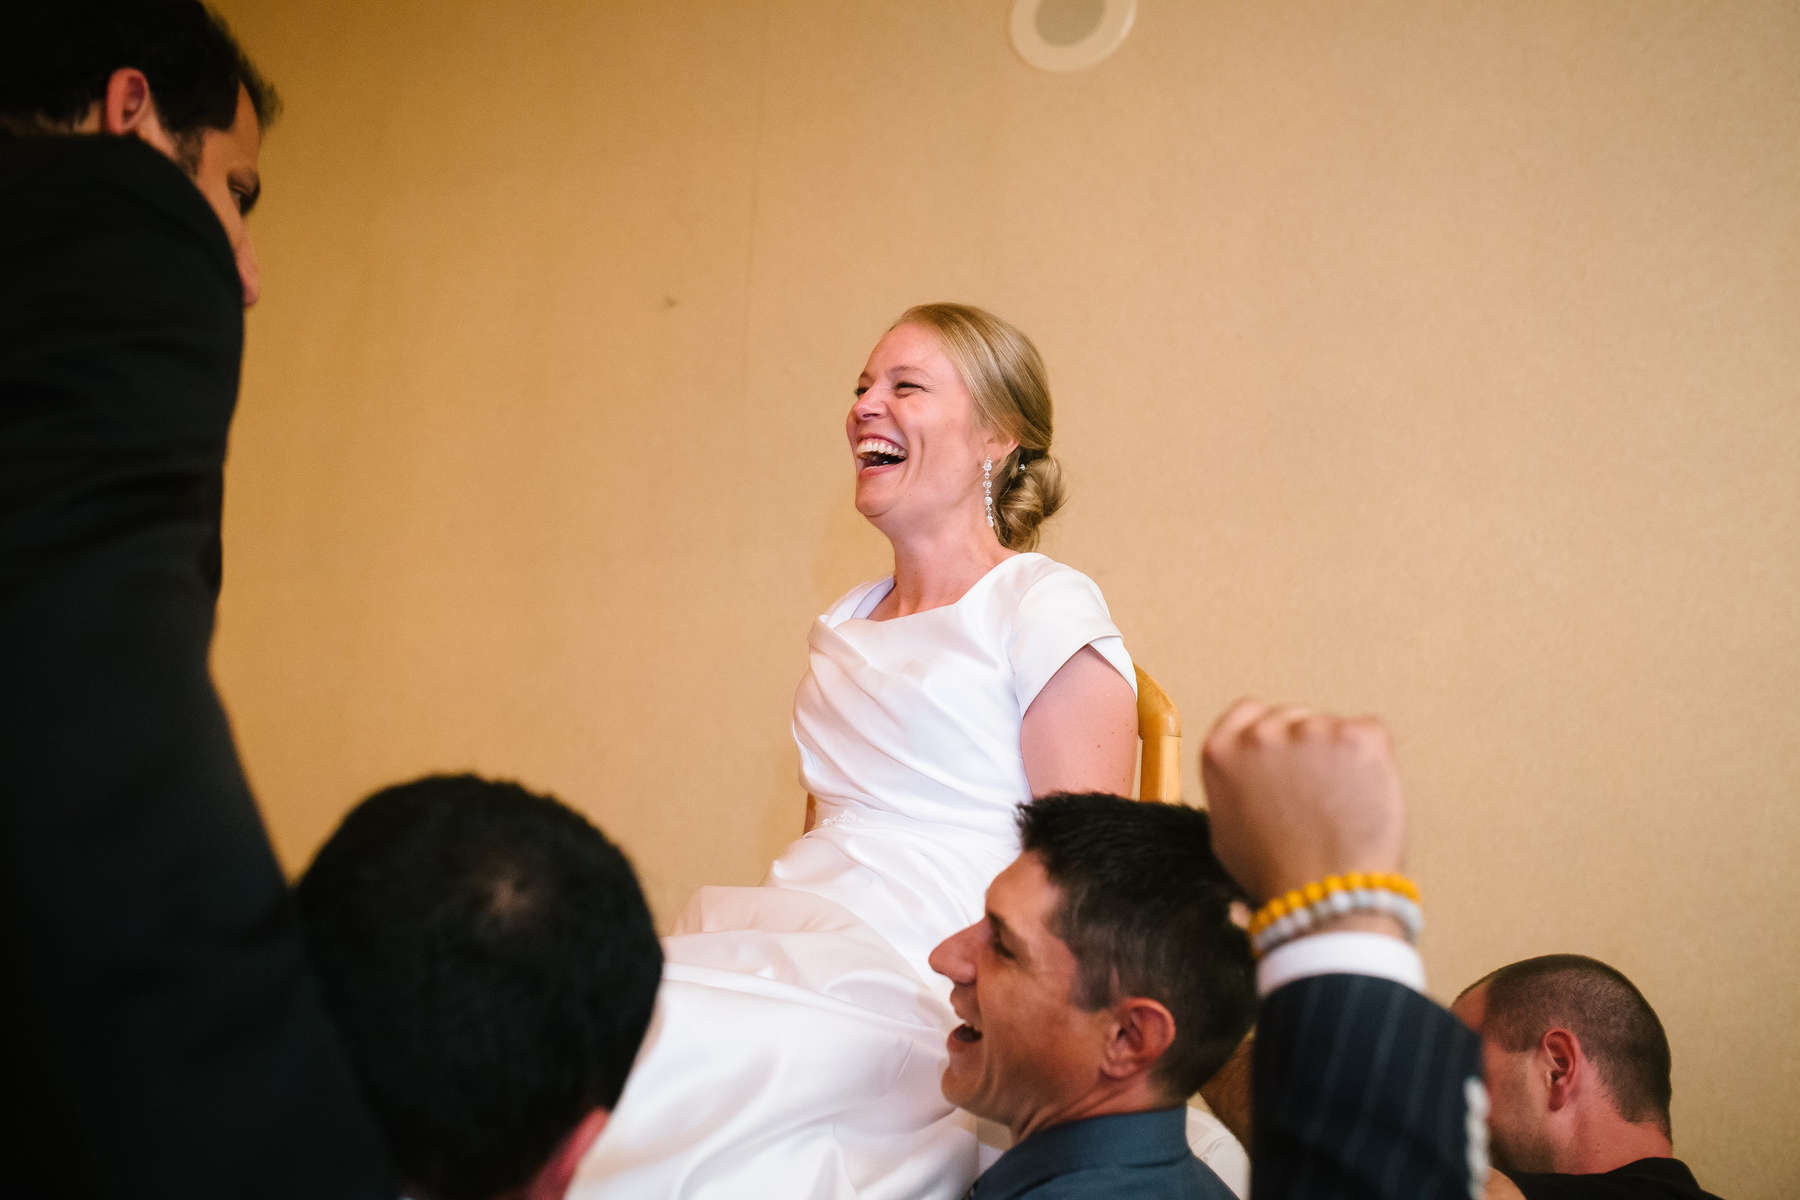 Heather & Sammy Wedding at , Monterey, California, USA on August 09, 2014.  Photo: Andrew Henderson